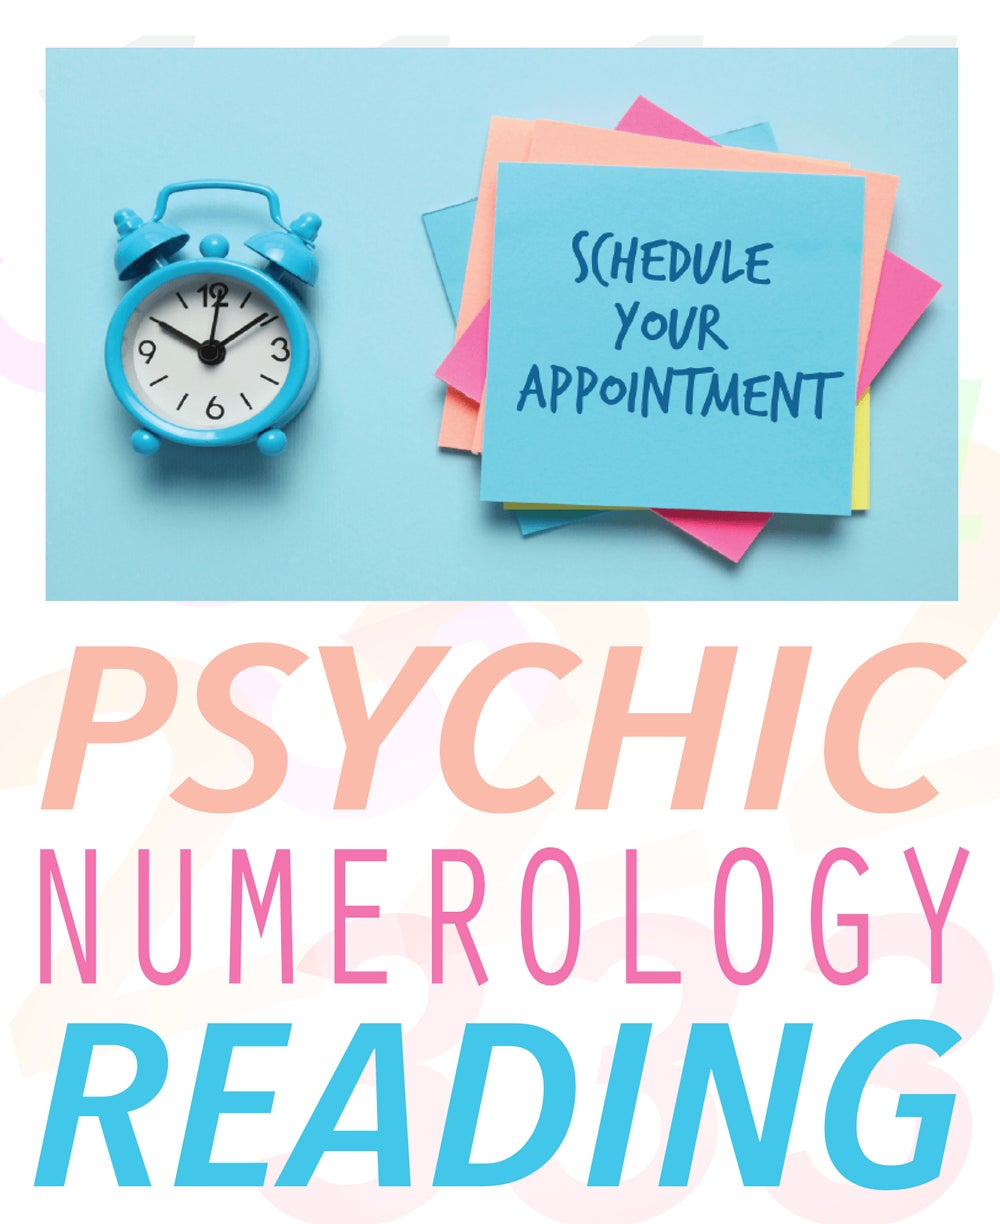 Image of Schedule A Numerology Reading